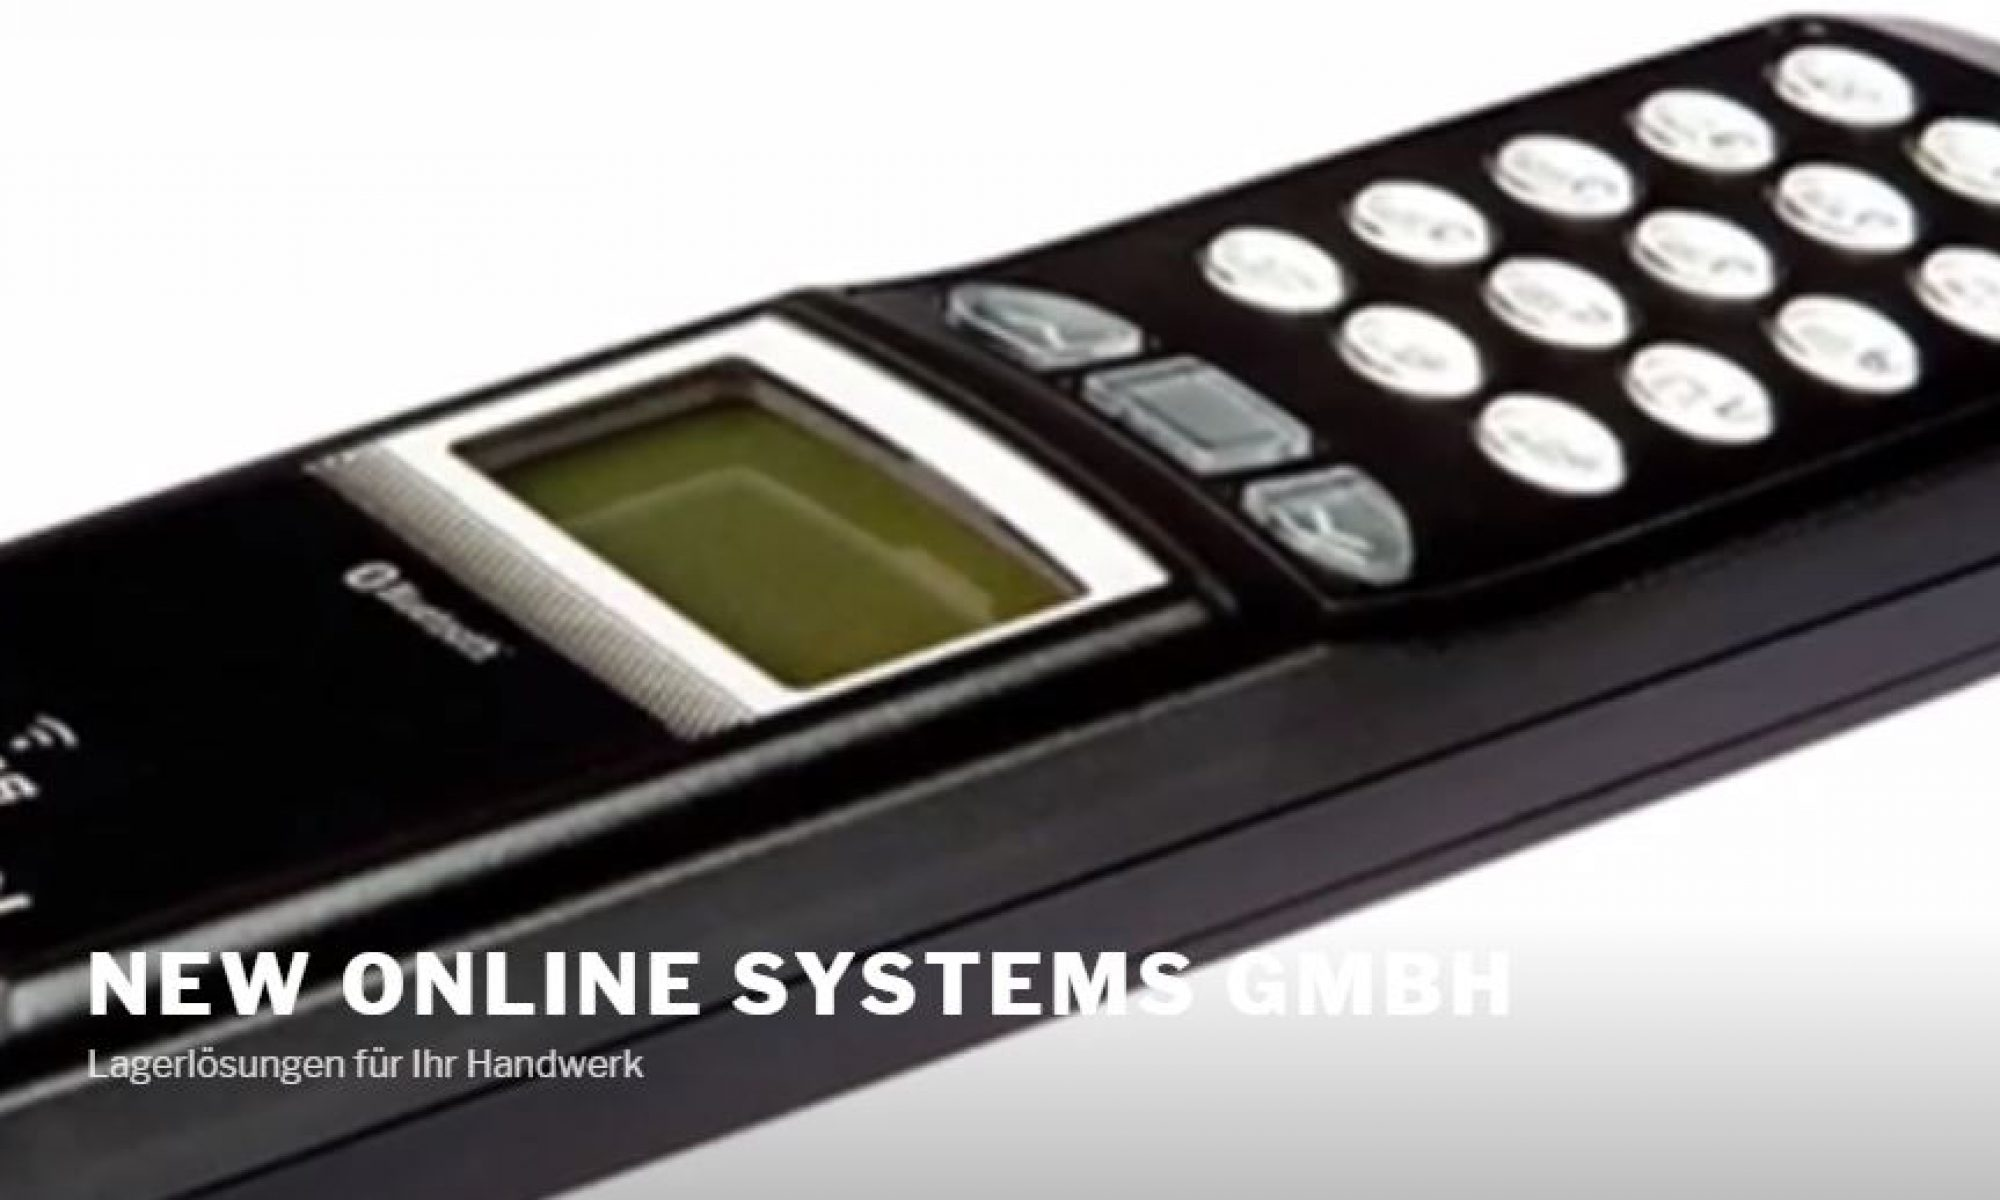 New Online Systems GmbH